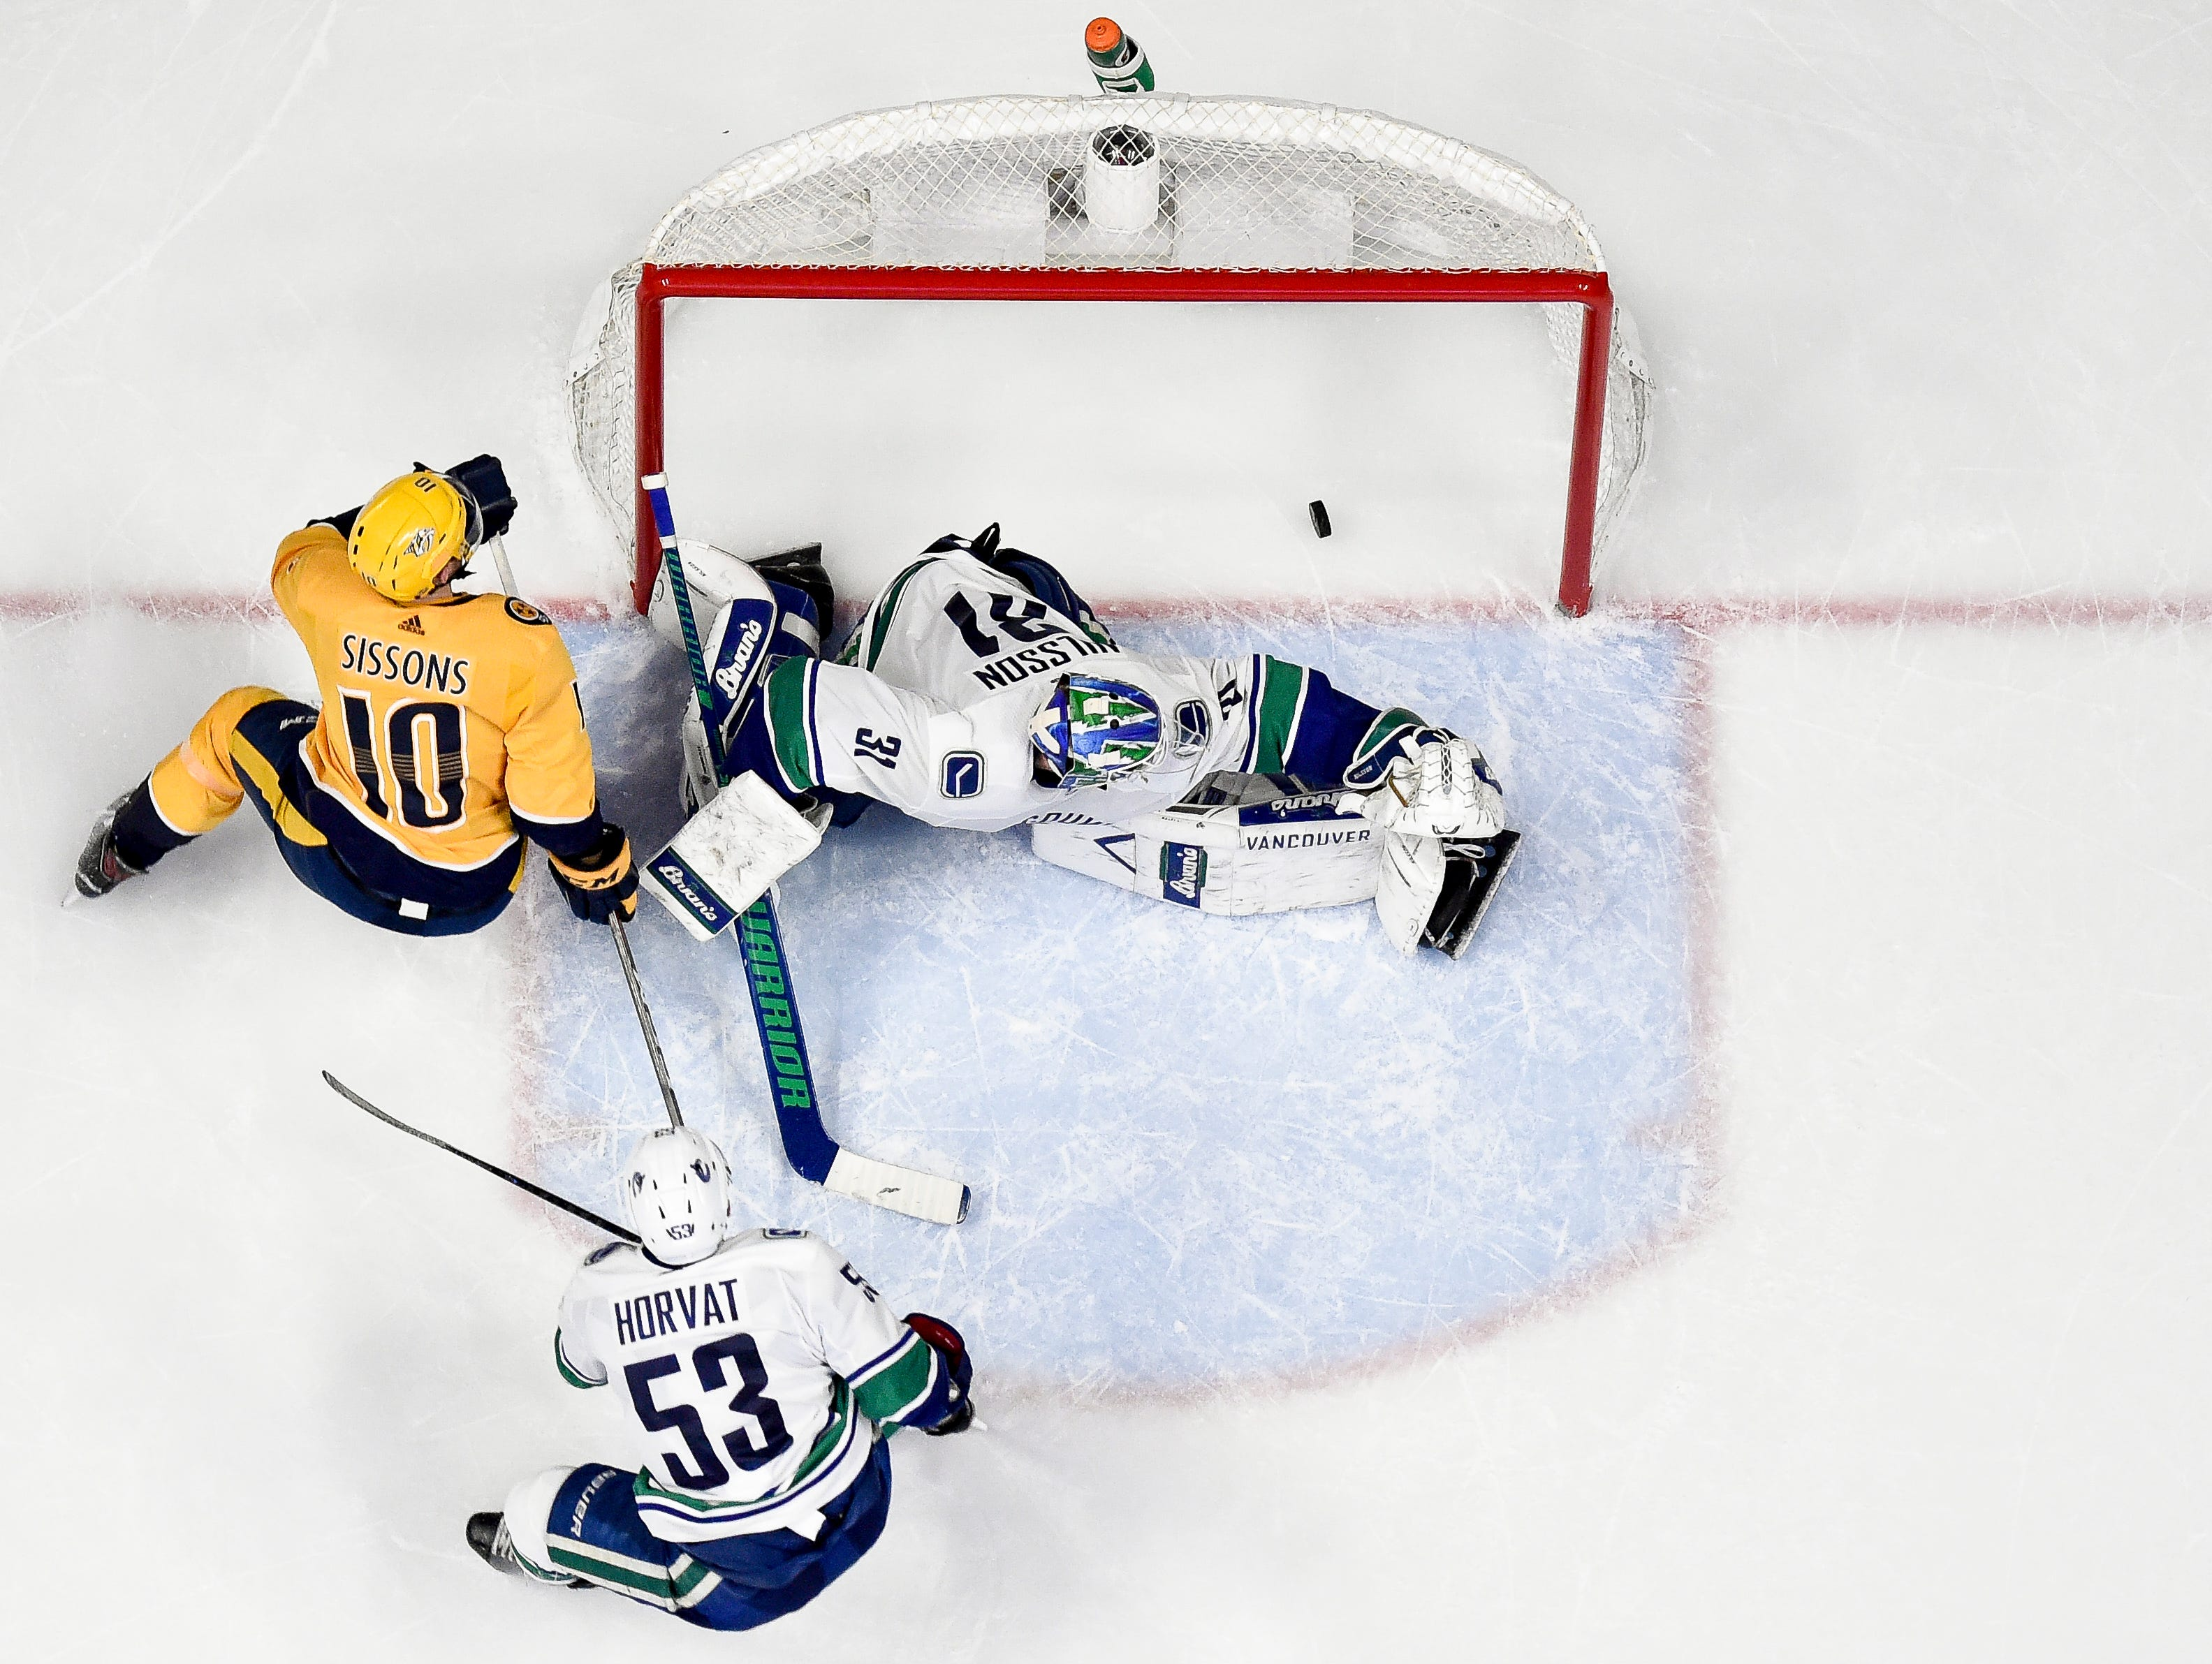 Nashville Predators center Colton Sissons (10) scores the game-winning goal past Vancouver Canucks goaltender Anders Nilsson (31) in overtime at Bridgestone Arena in Nashville, Tenn., Thursday, Dec. 13, 2018.